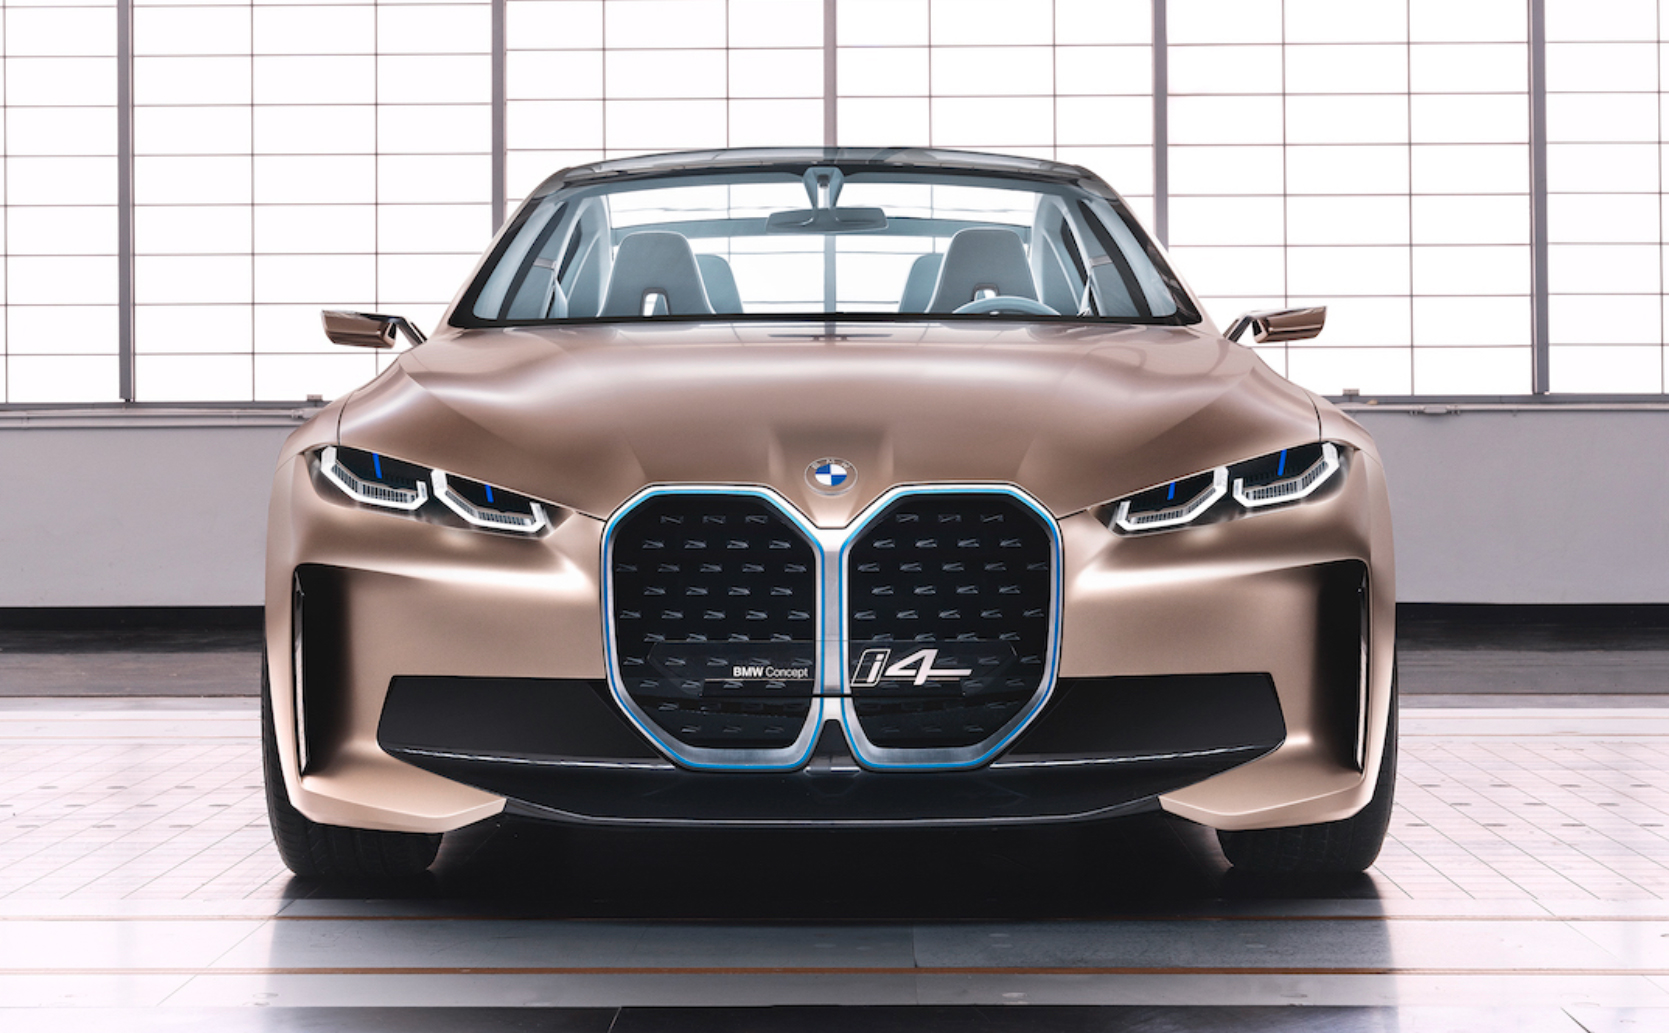 BMW-i4-Concept front